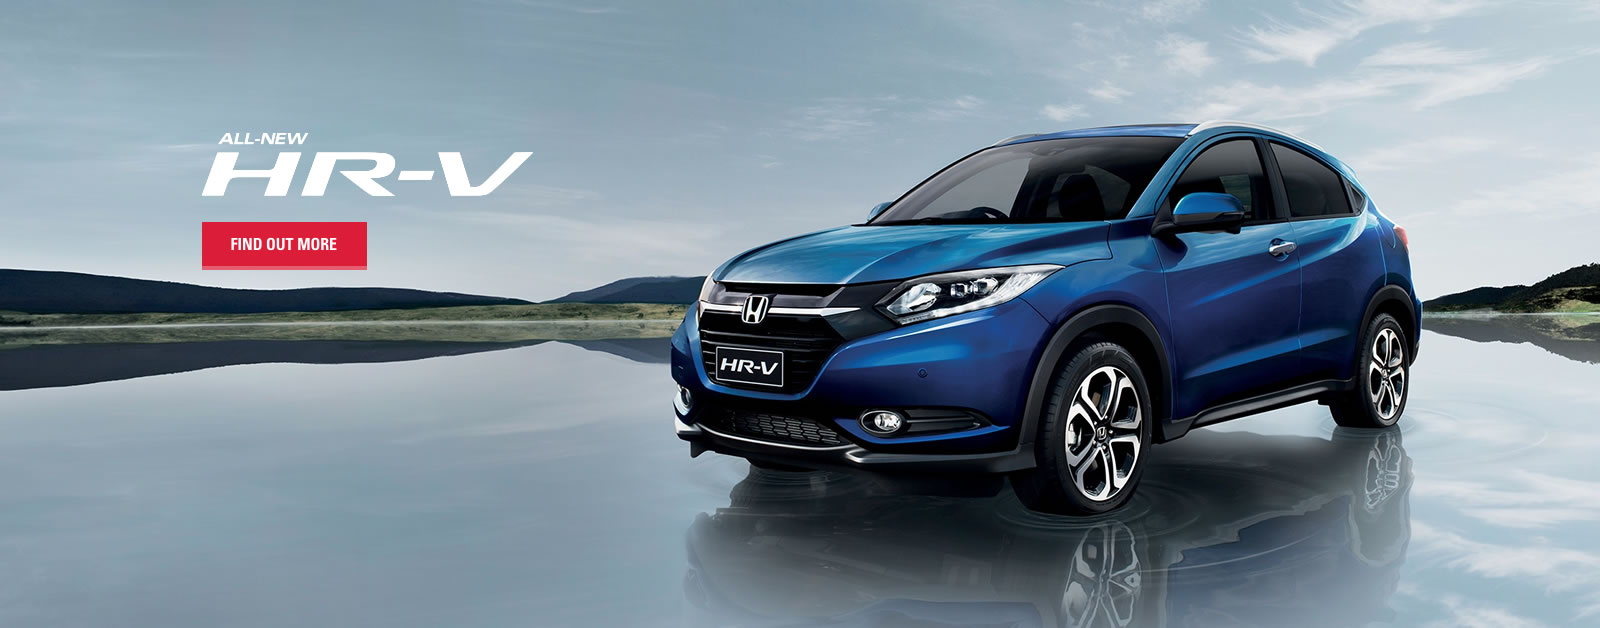 Find out more about the stylish Honda HR-V SUV at Northside Honda Brisbane.